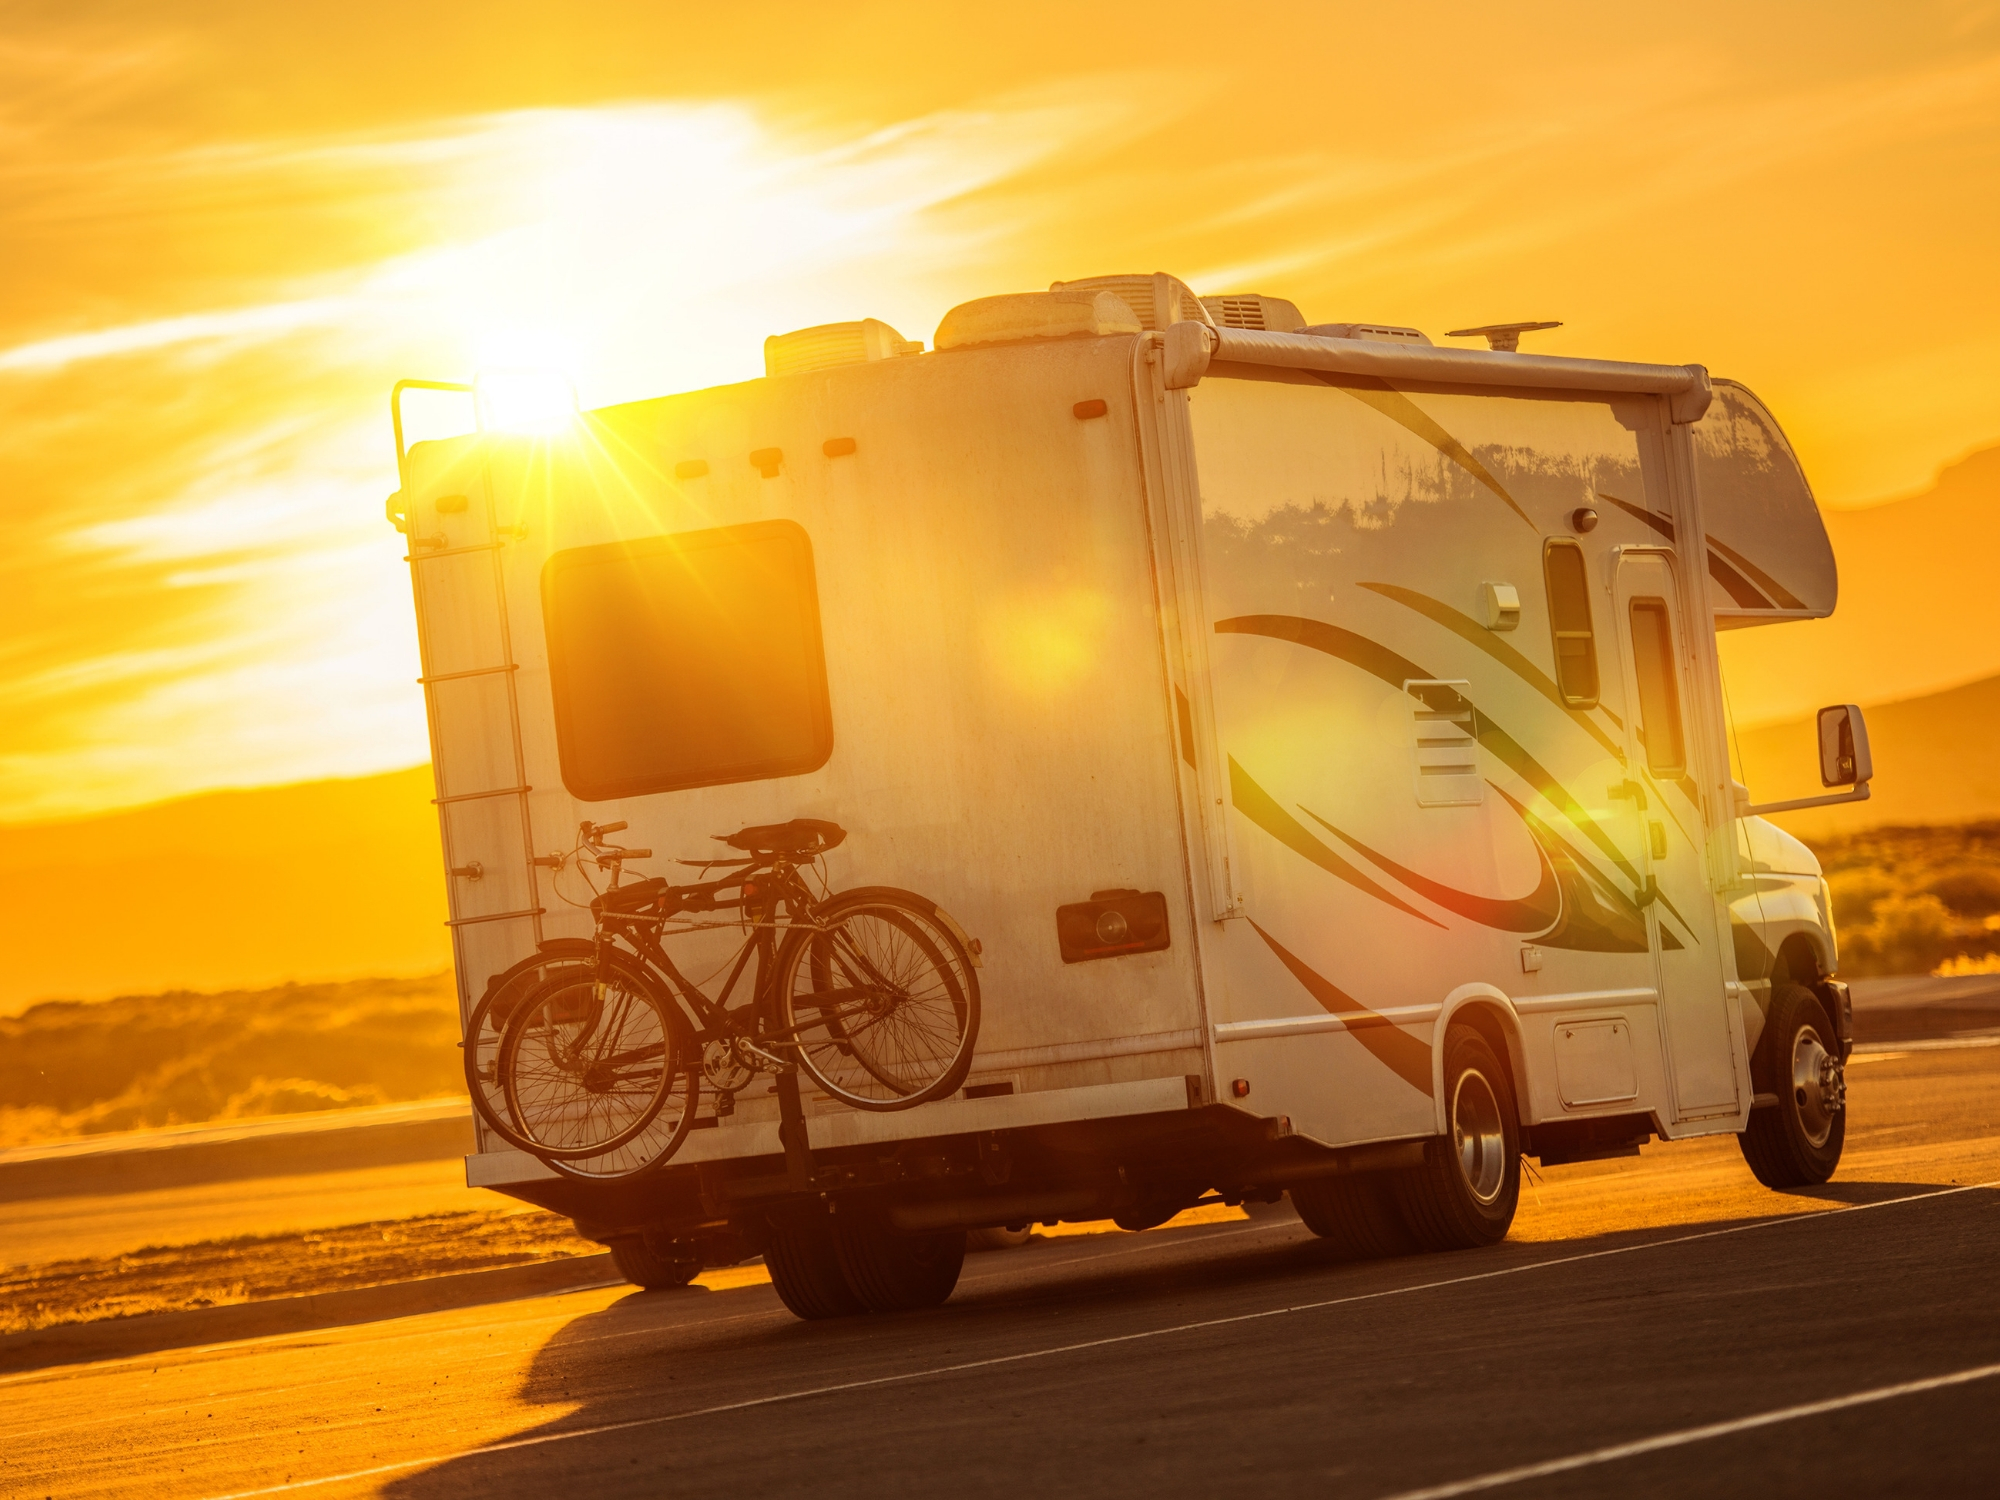 RV with bicycle driving through Sunset